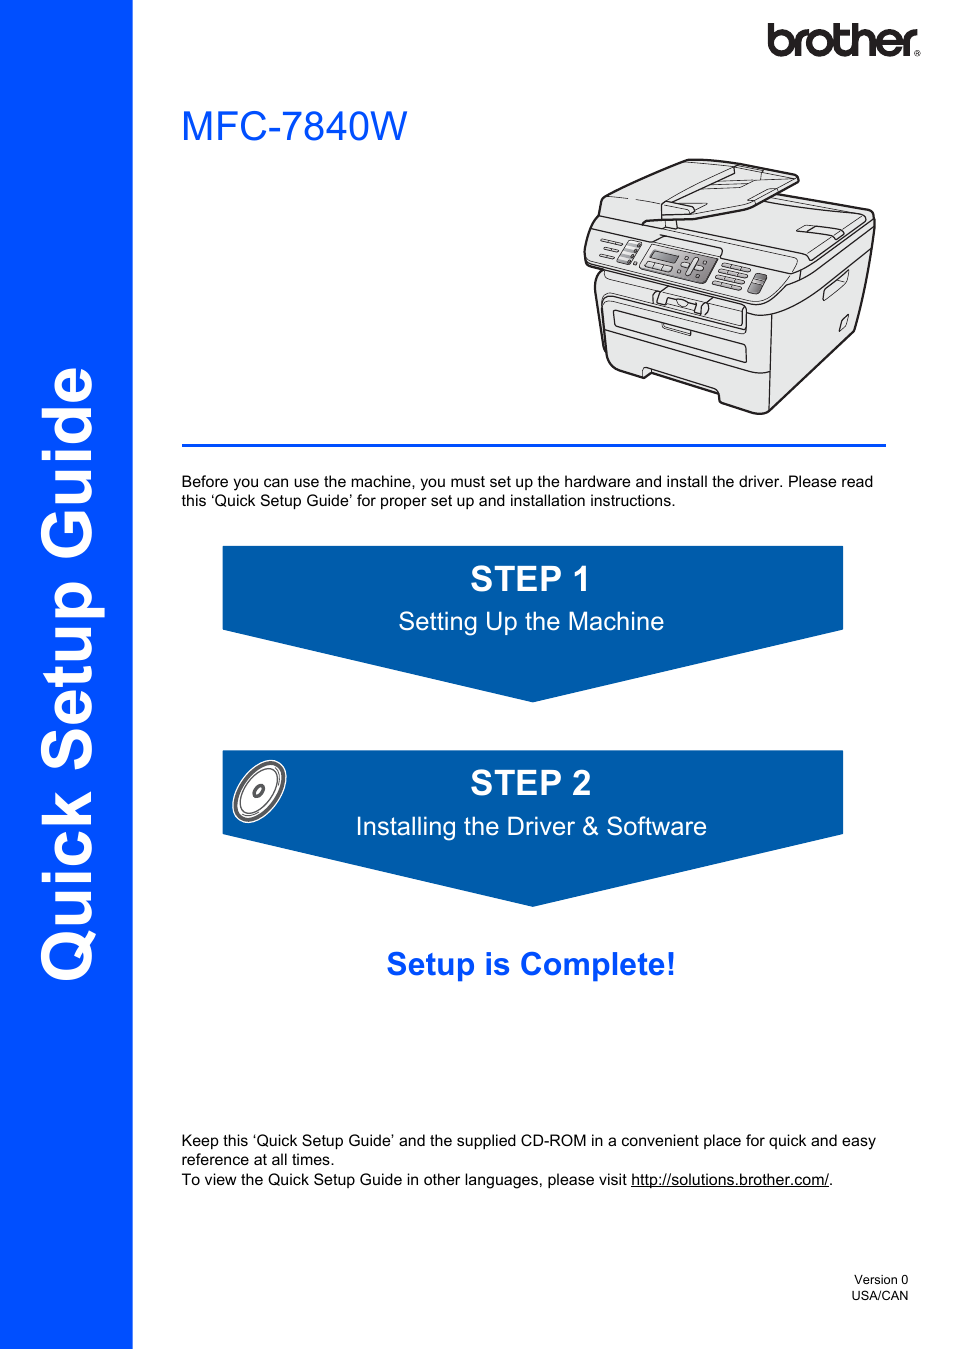 brother mfc 7840w user manual 52 pages rh manualsdir com brother quick setup guide mfc-j480dw brother quick setup guide mfc-j475dw